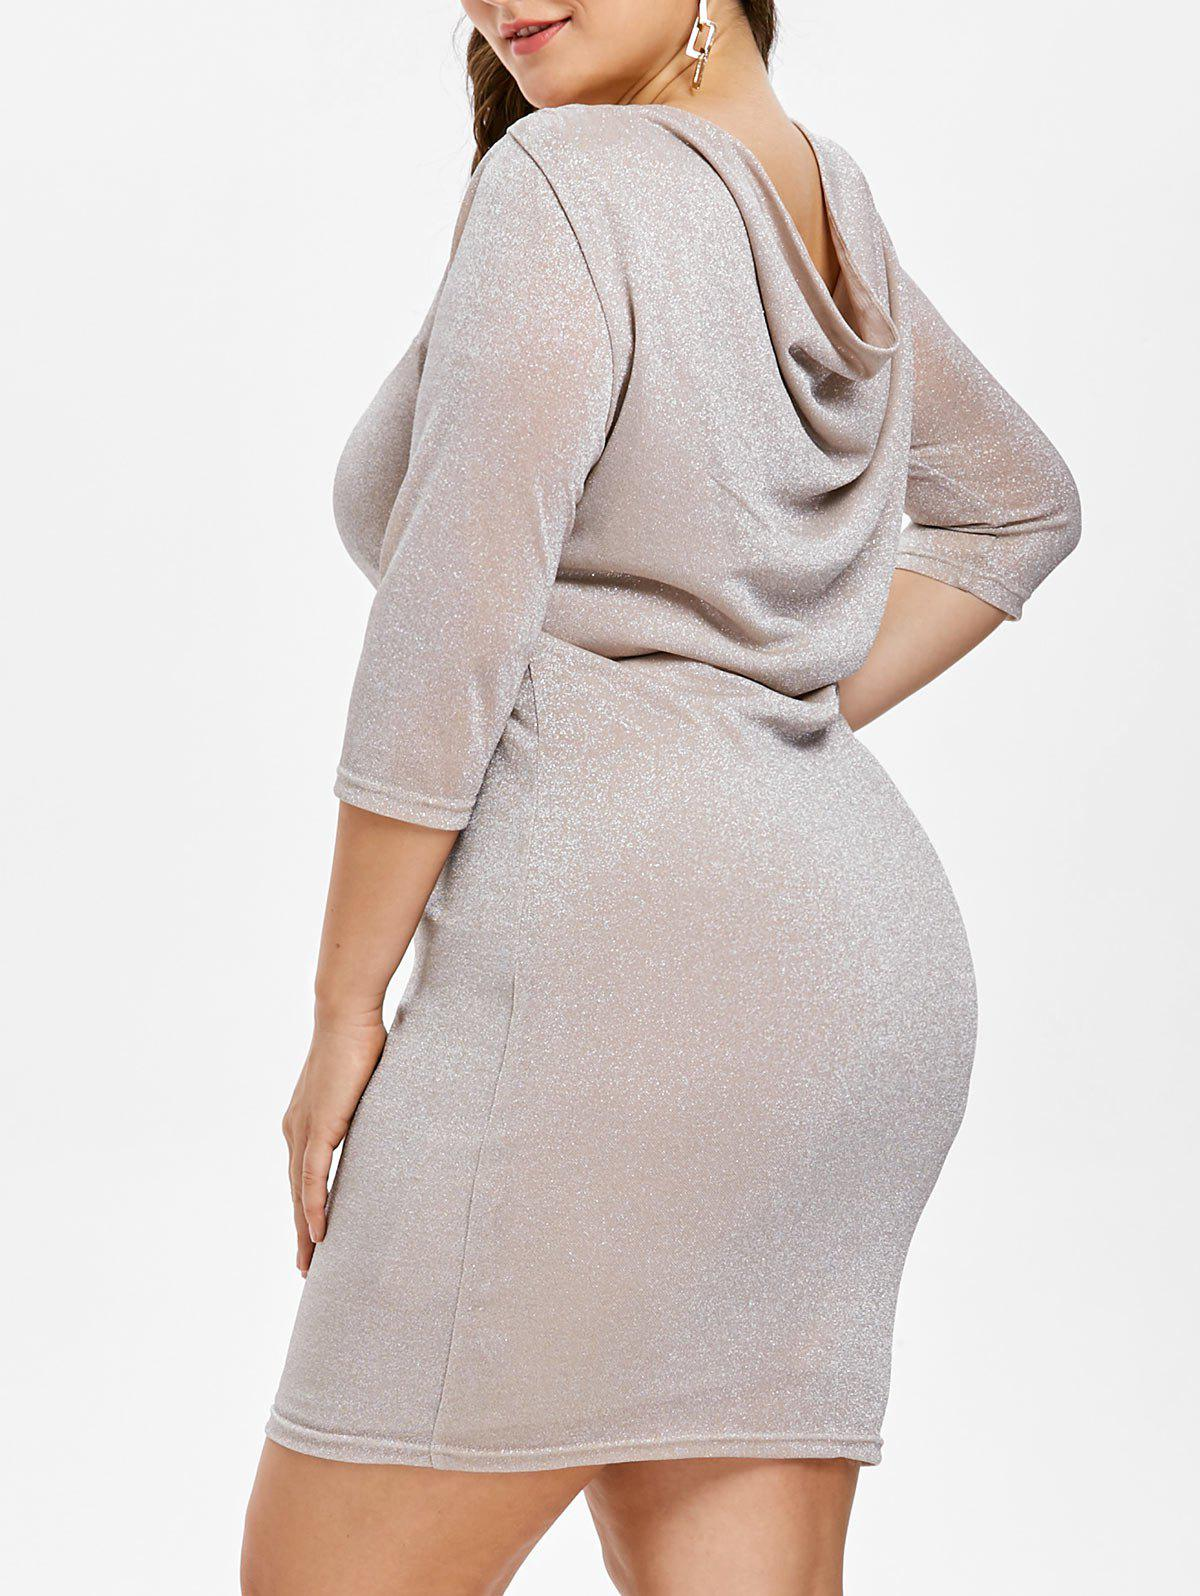 Plus Size Sparkly Cowl Back Bodycon Dress